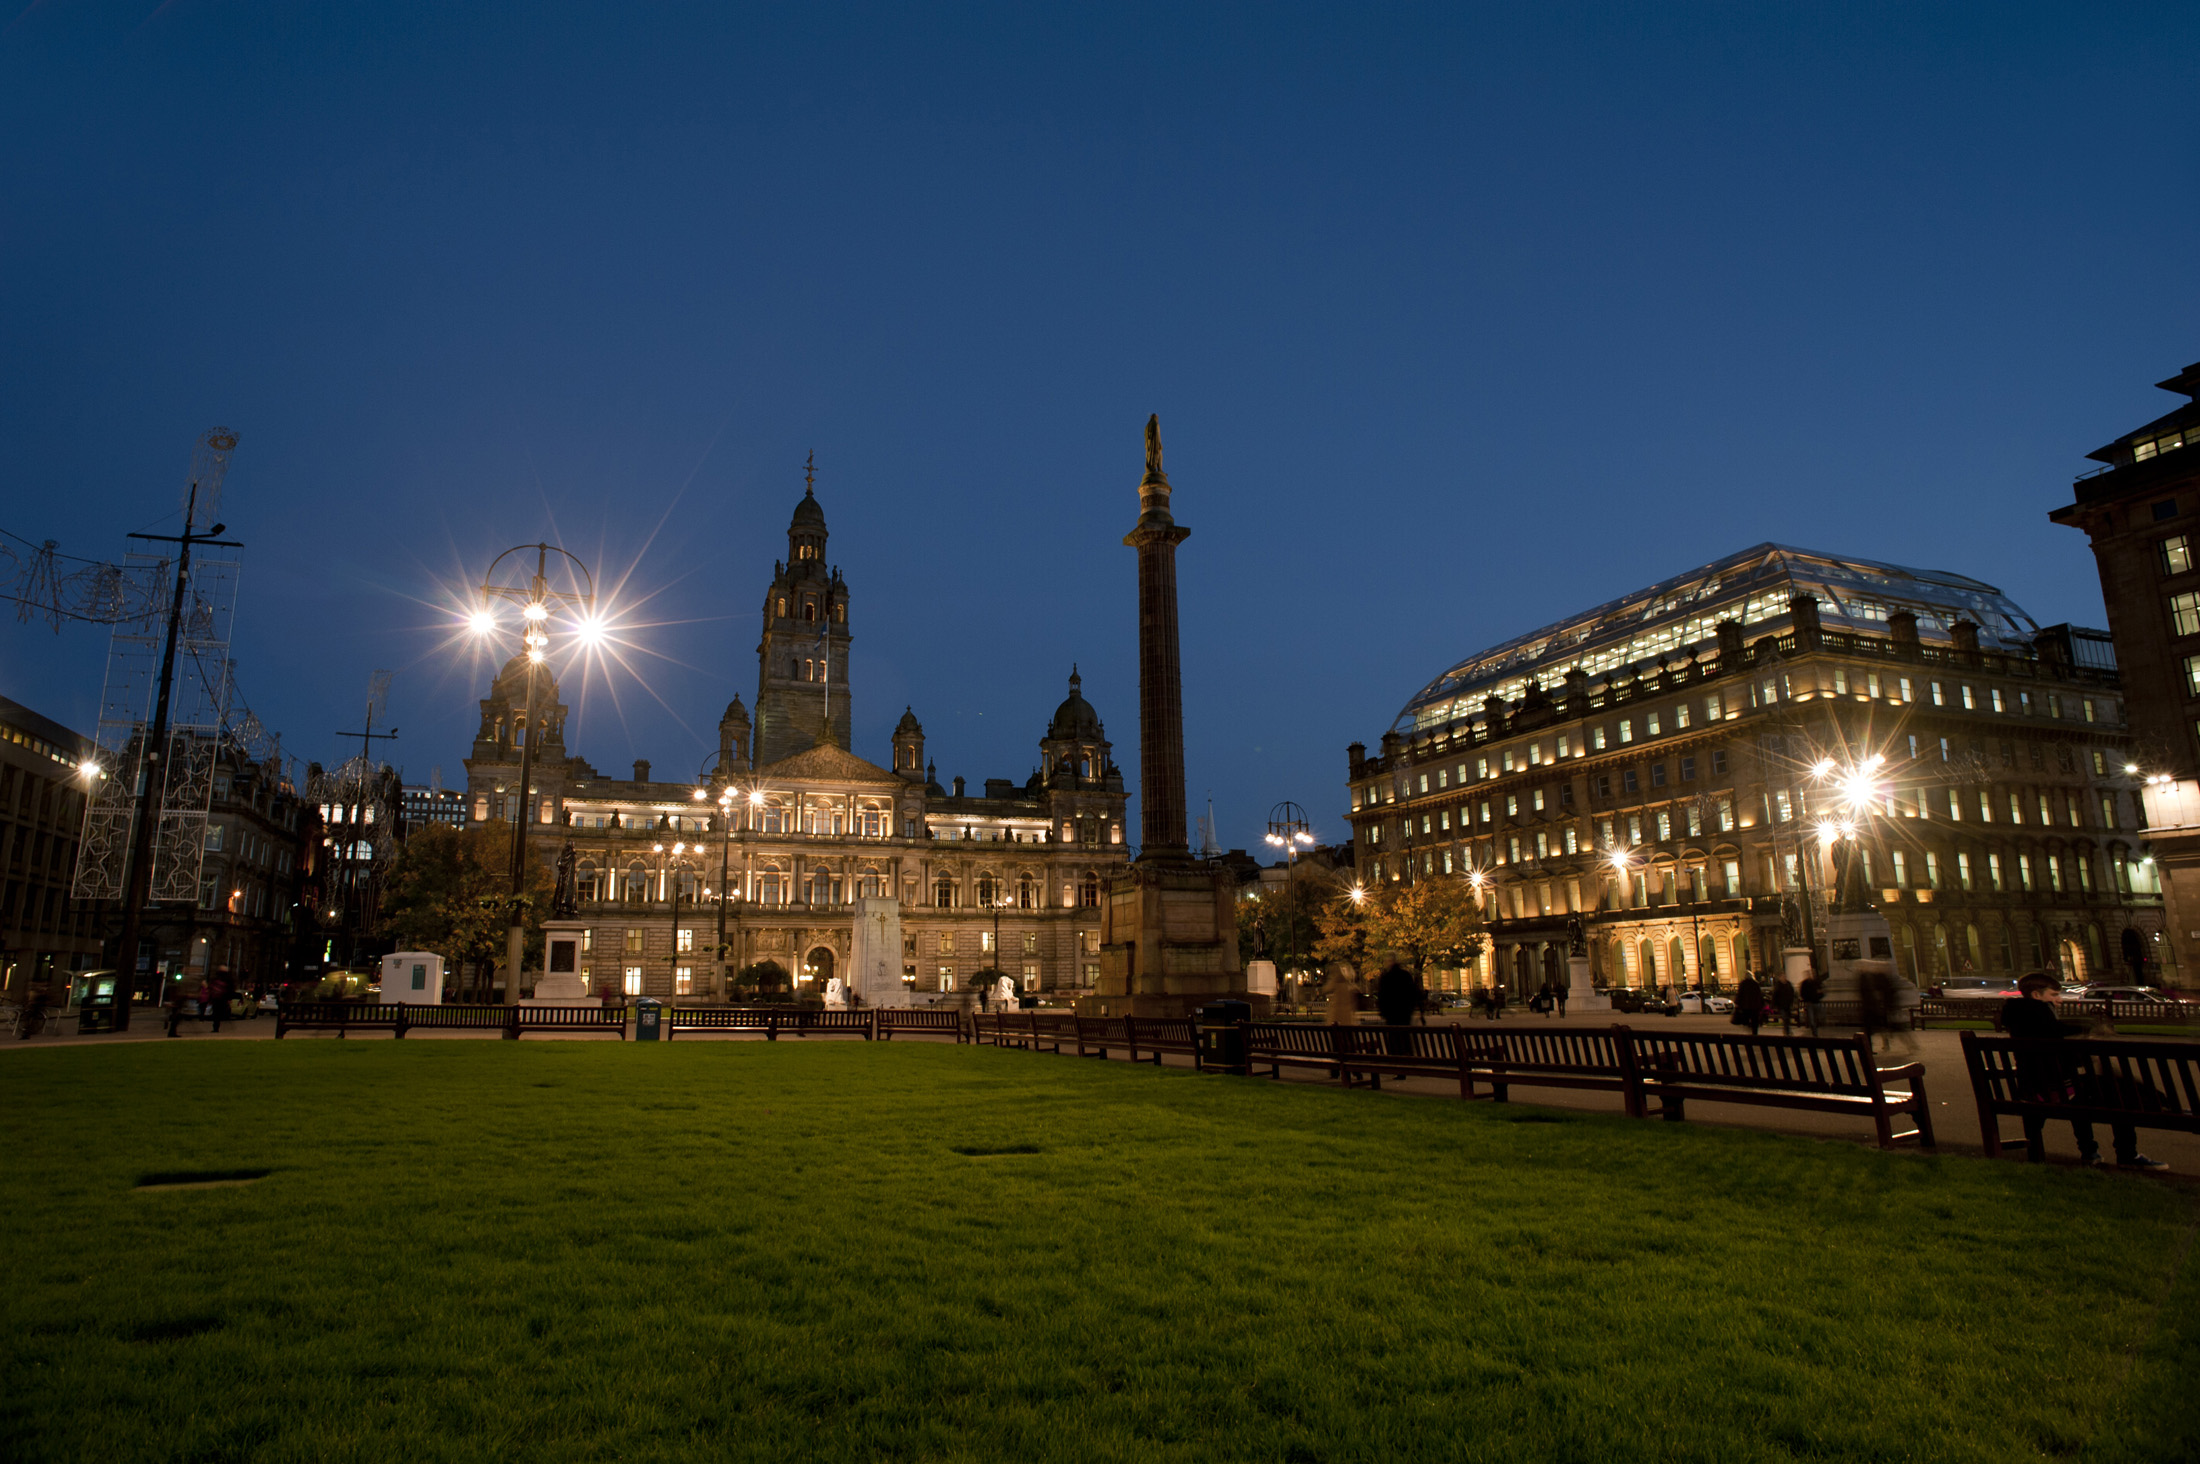 George Square in Glasgow at night with lights illuminating the historical buildings of the Glasgow City Council